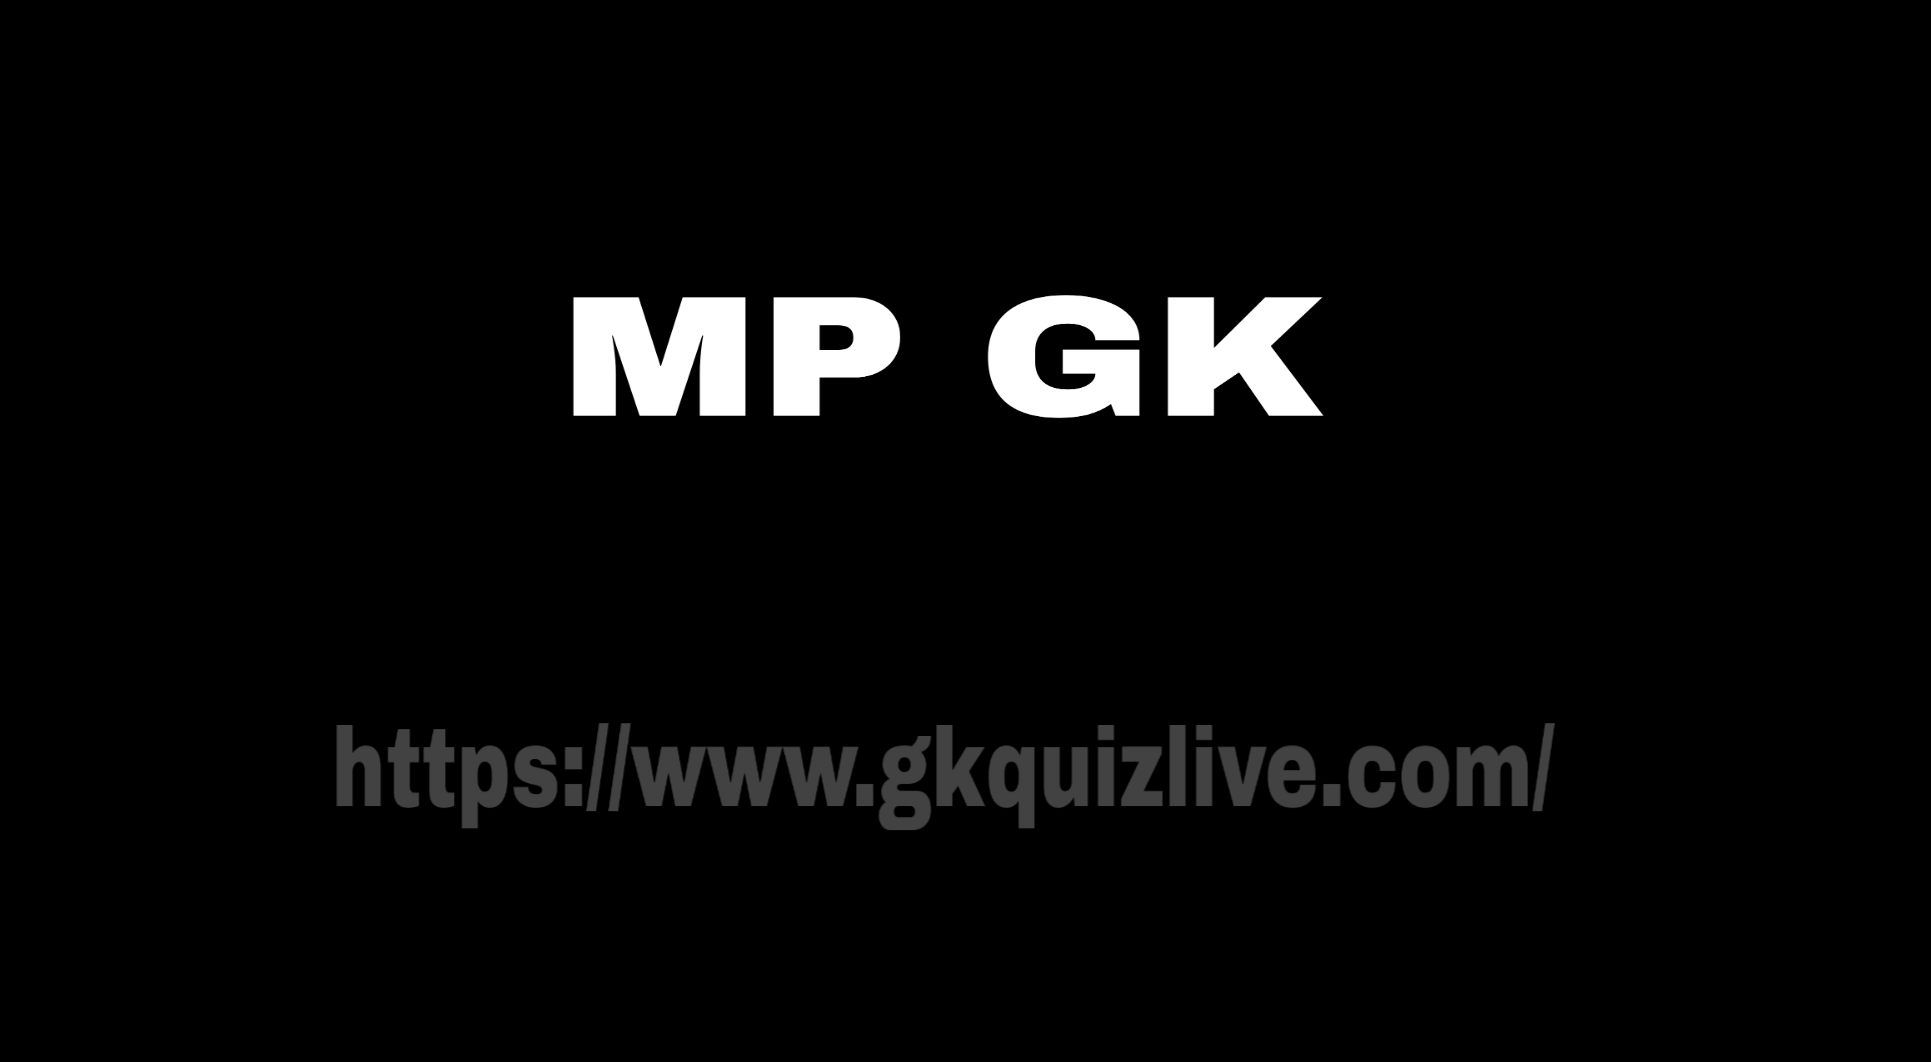 Important Current Mp Gk In Hindi 2021